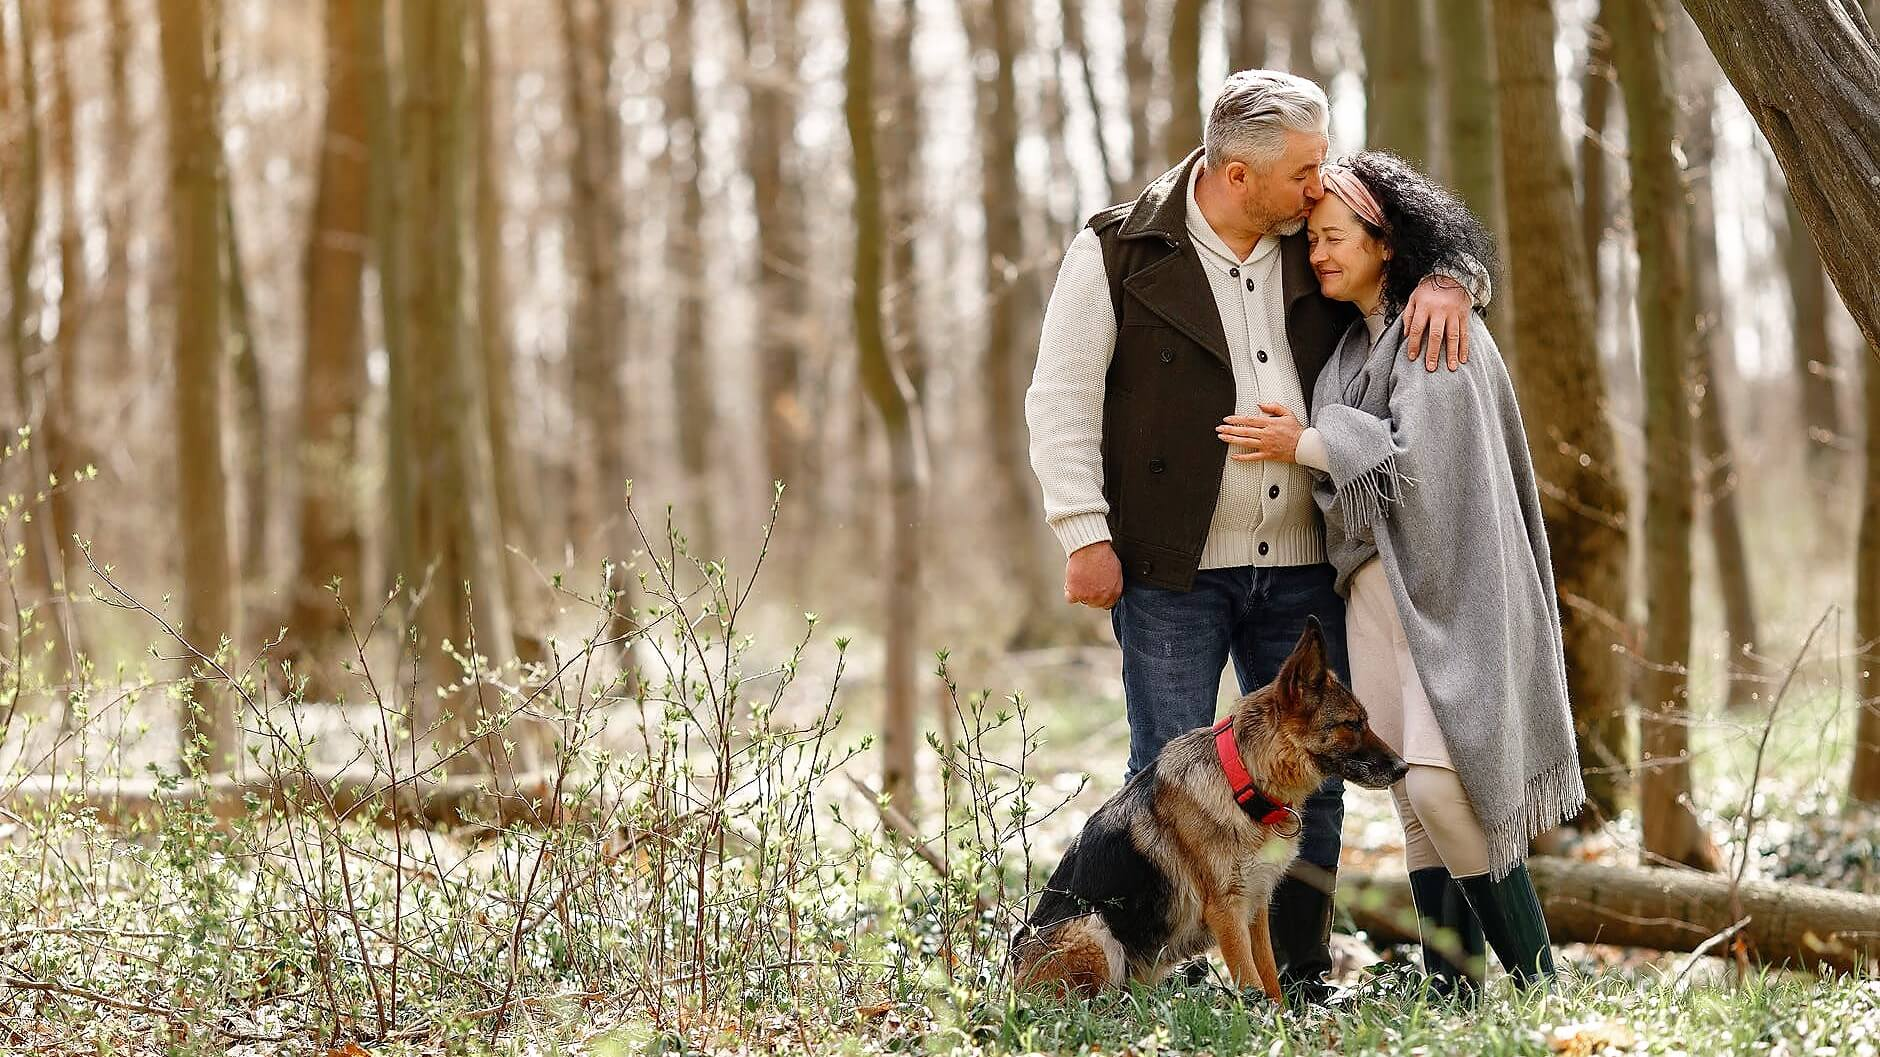 Senior couple spending time in the forest with their dog.